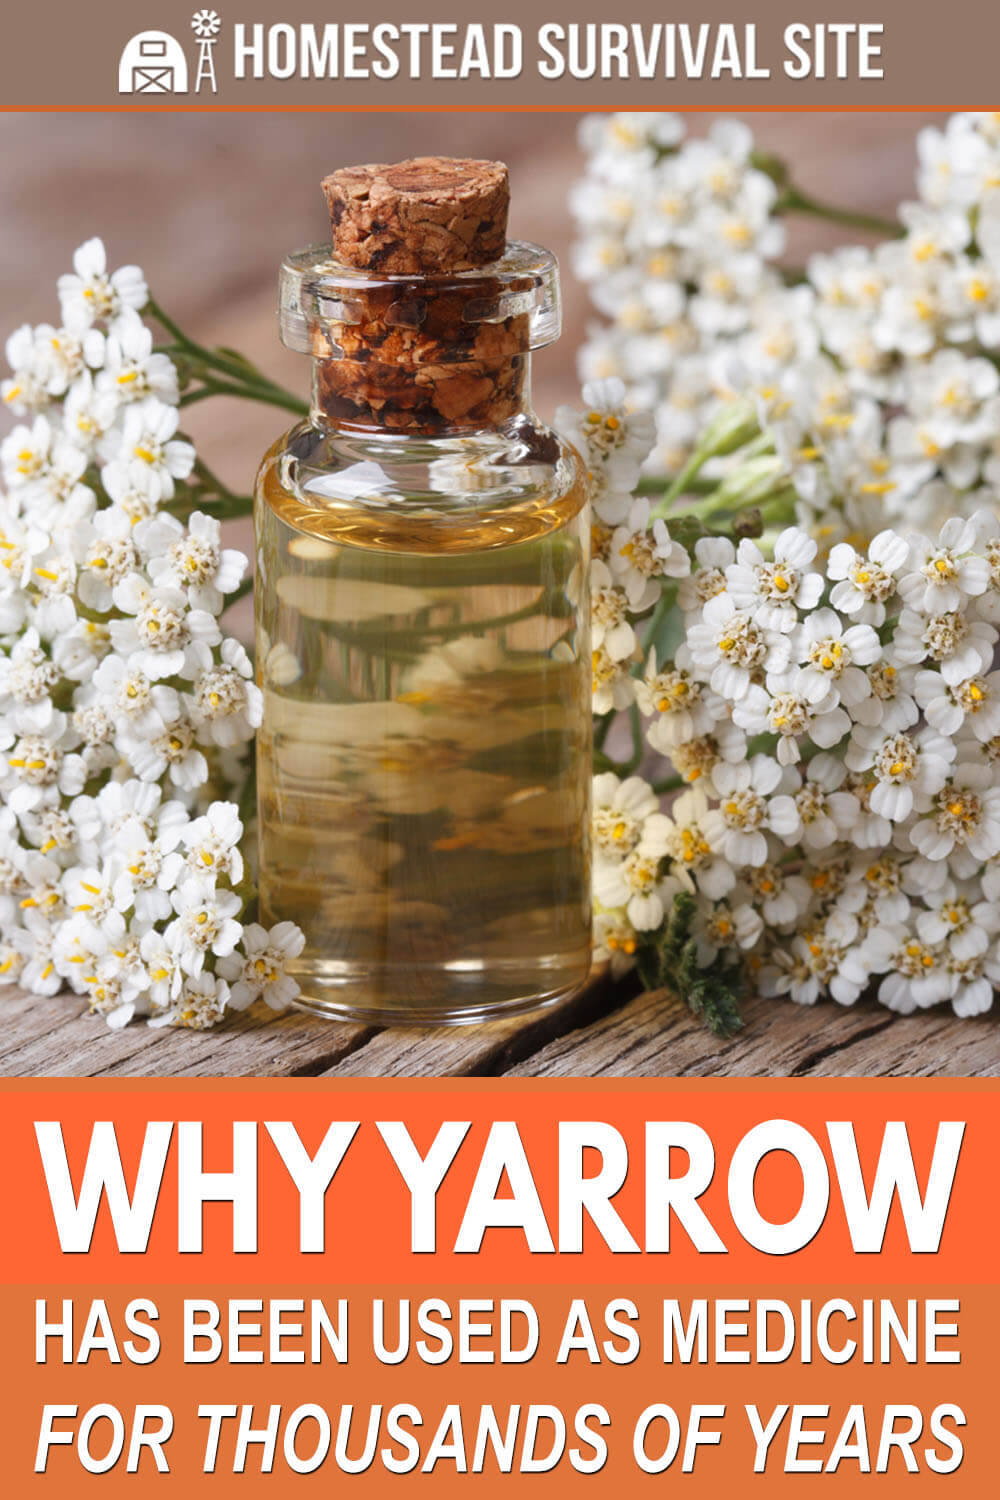 Why Yarrow Has Been Used as Medicine for Thousands of Years